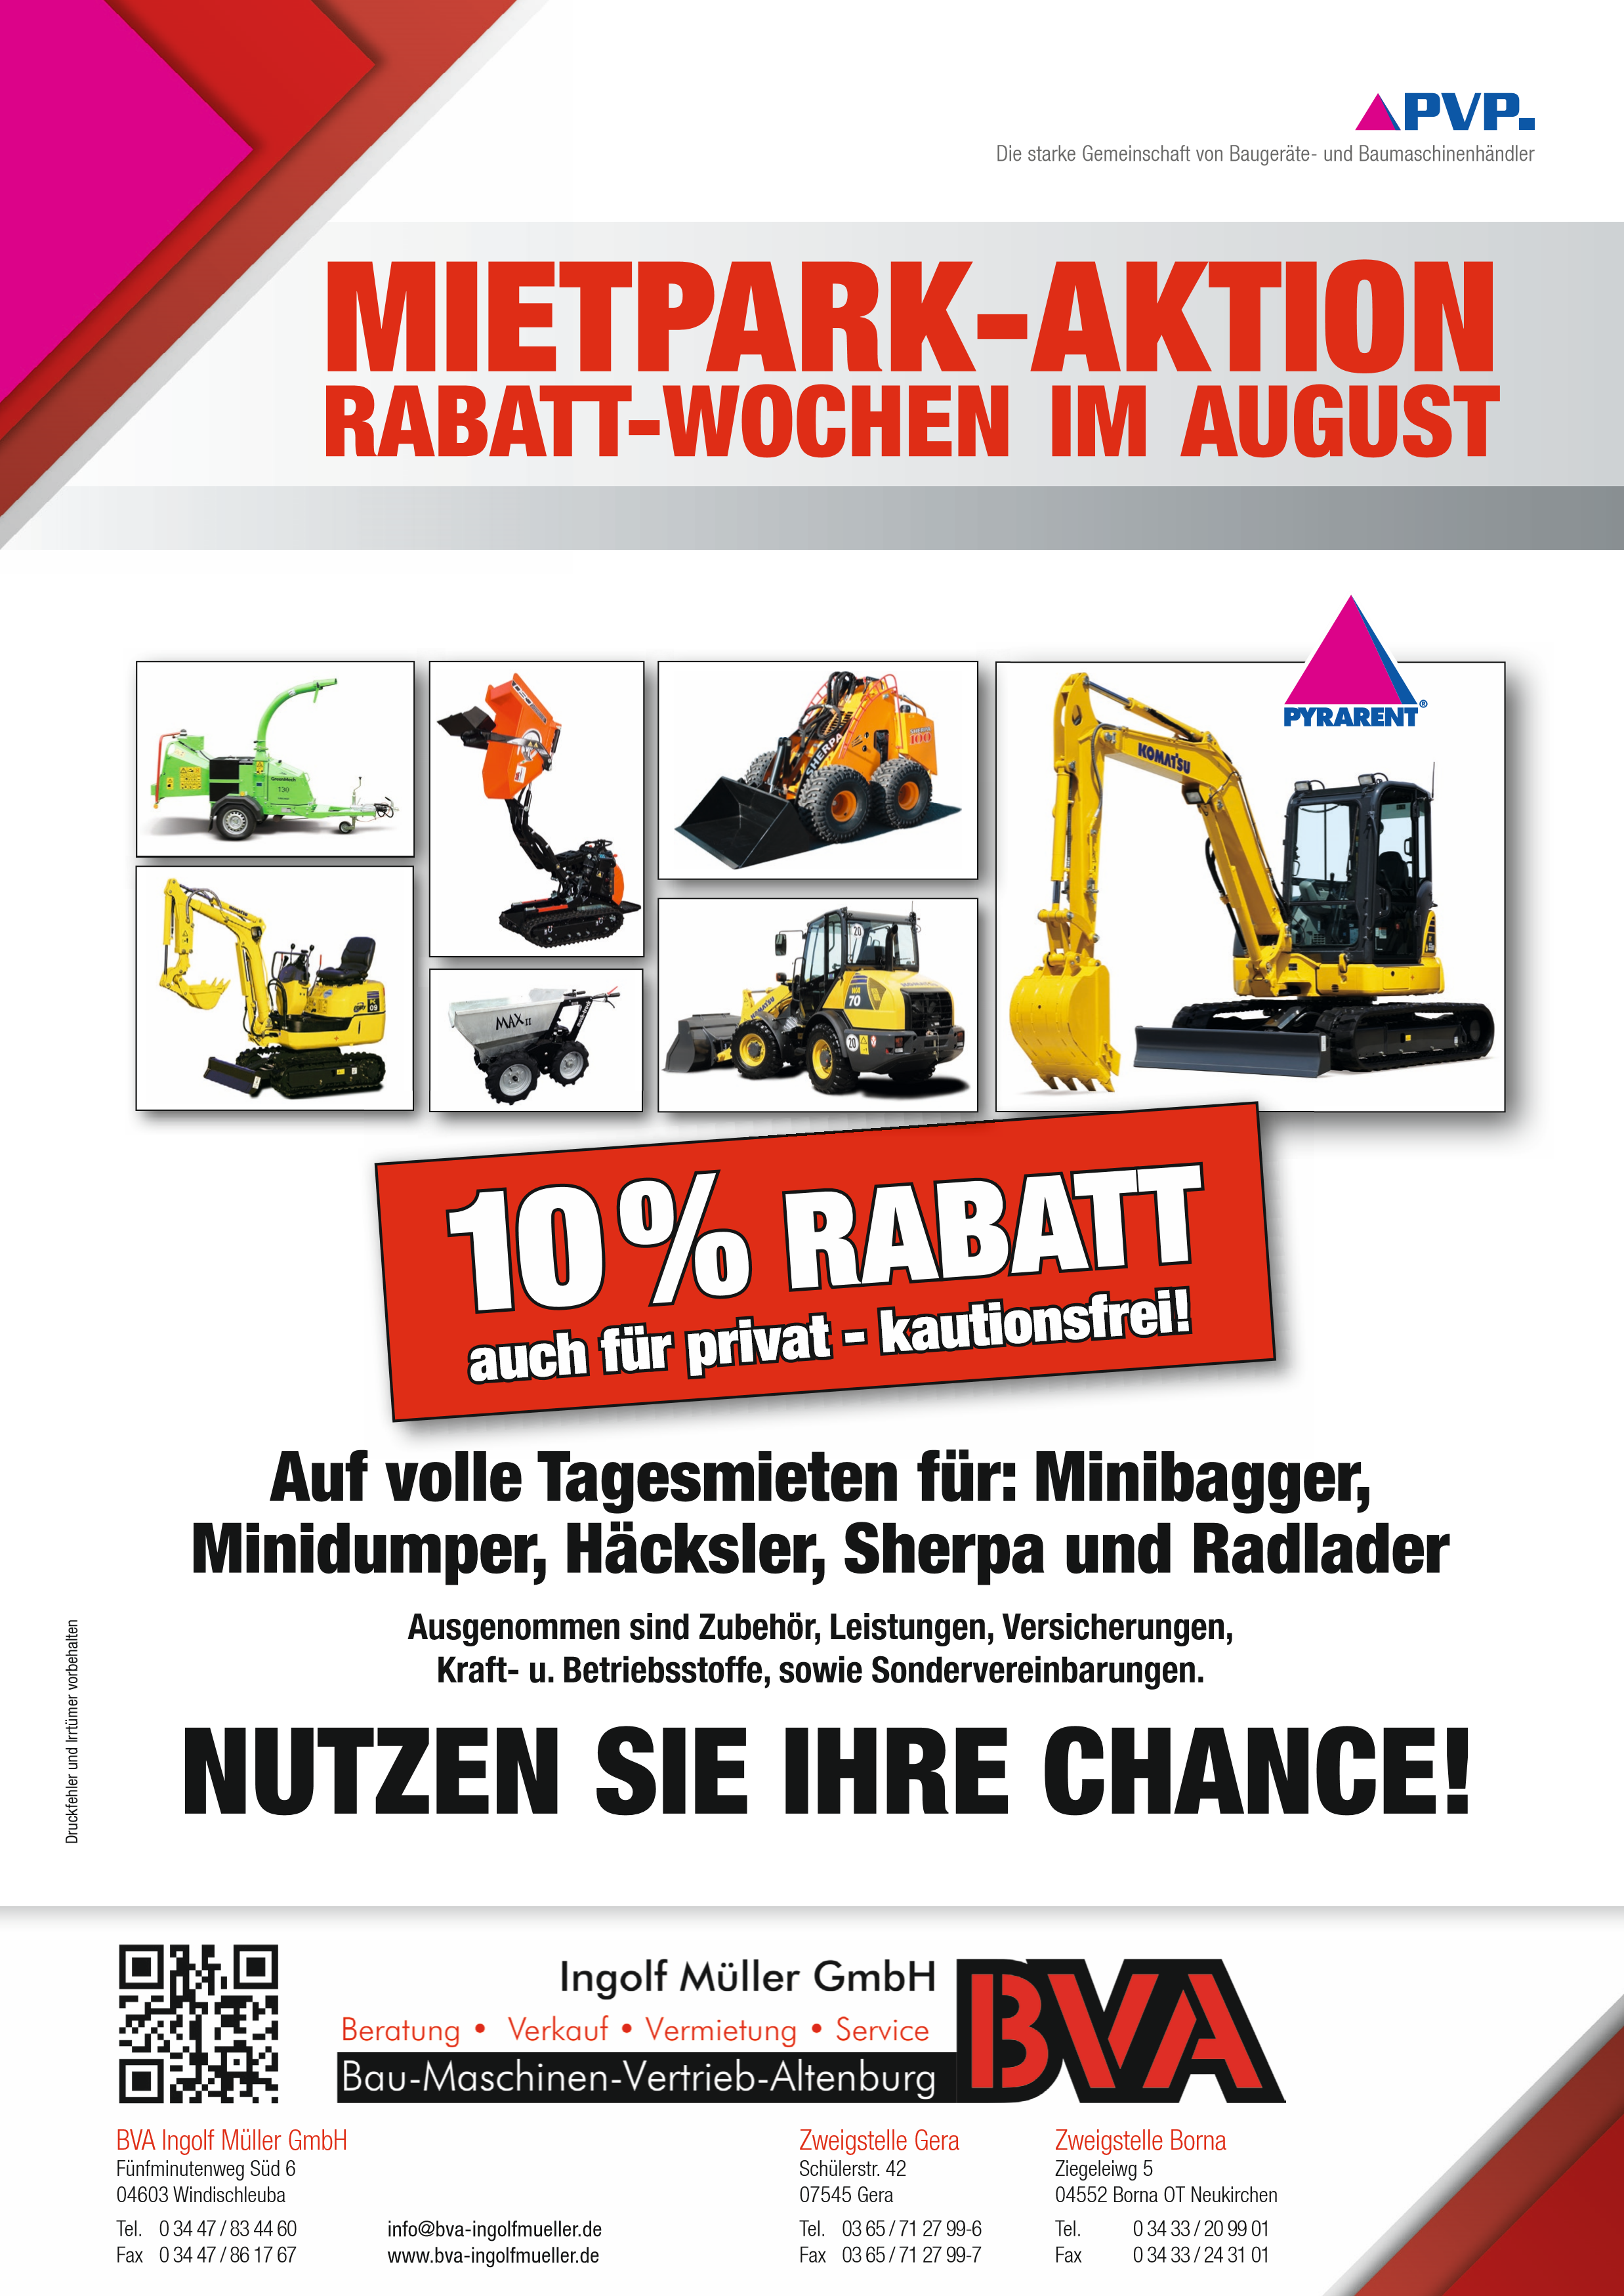 BVA Mietpark Aktion im August 2017